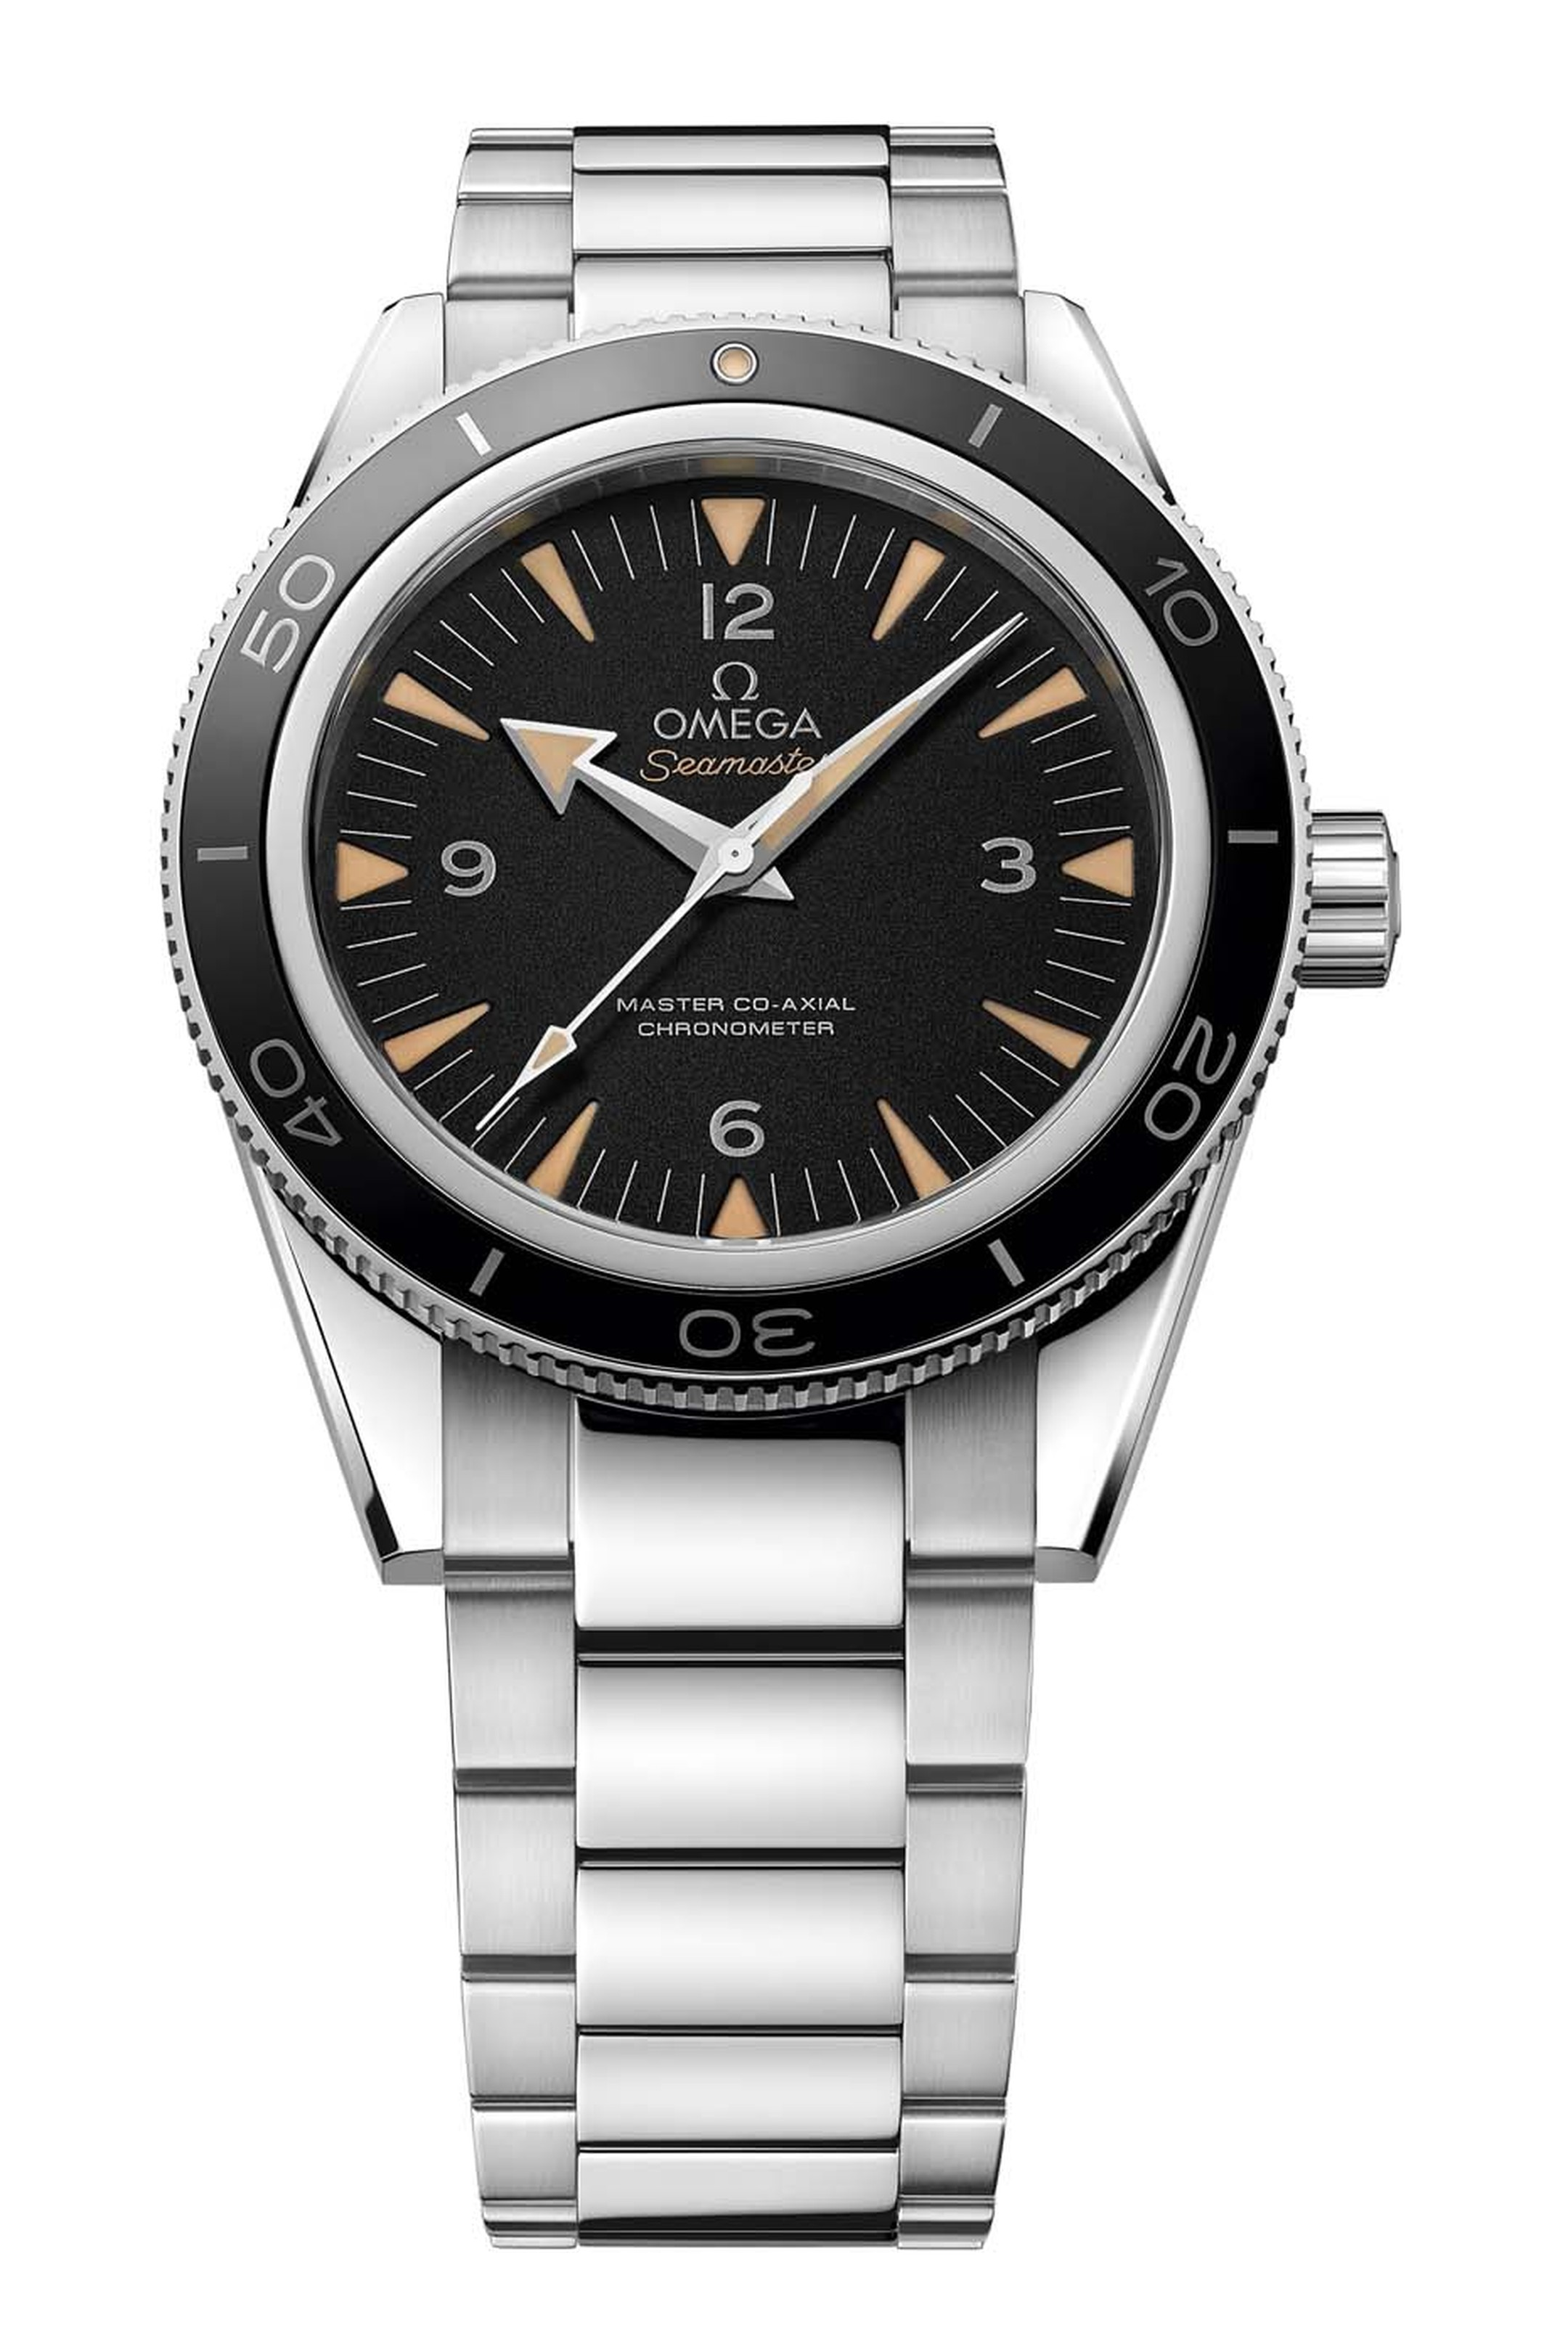 The Omega Seamaster 300 is a faithful reinterpretation of Omega's classic 1957 Seamaster model for professional divers.